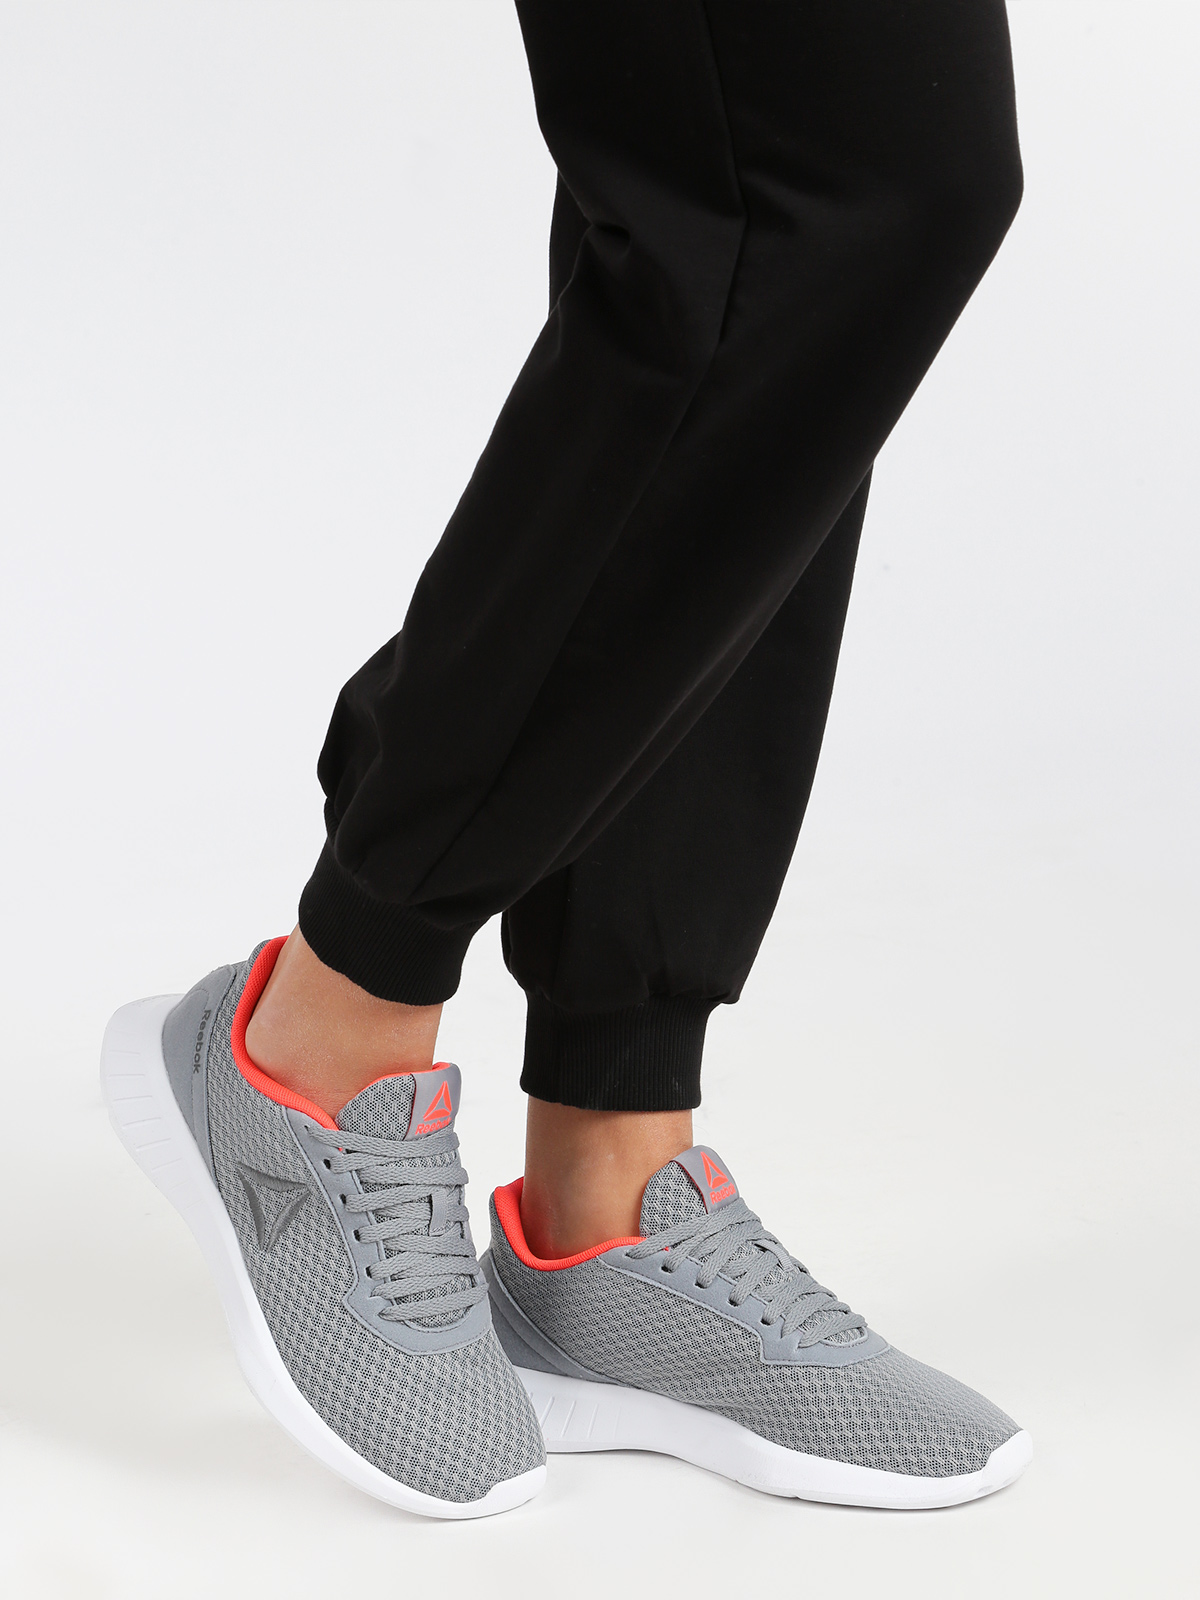 Lite Running shoes running woman in gray